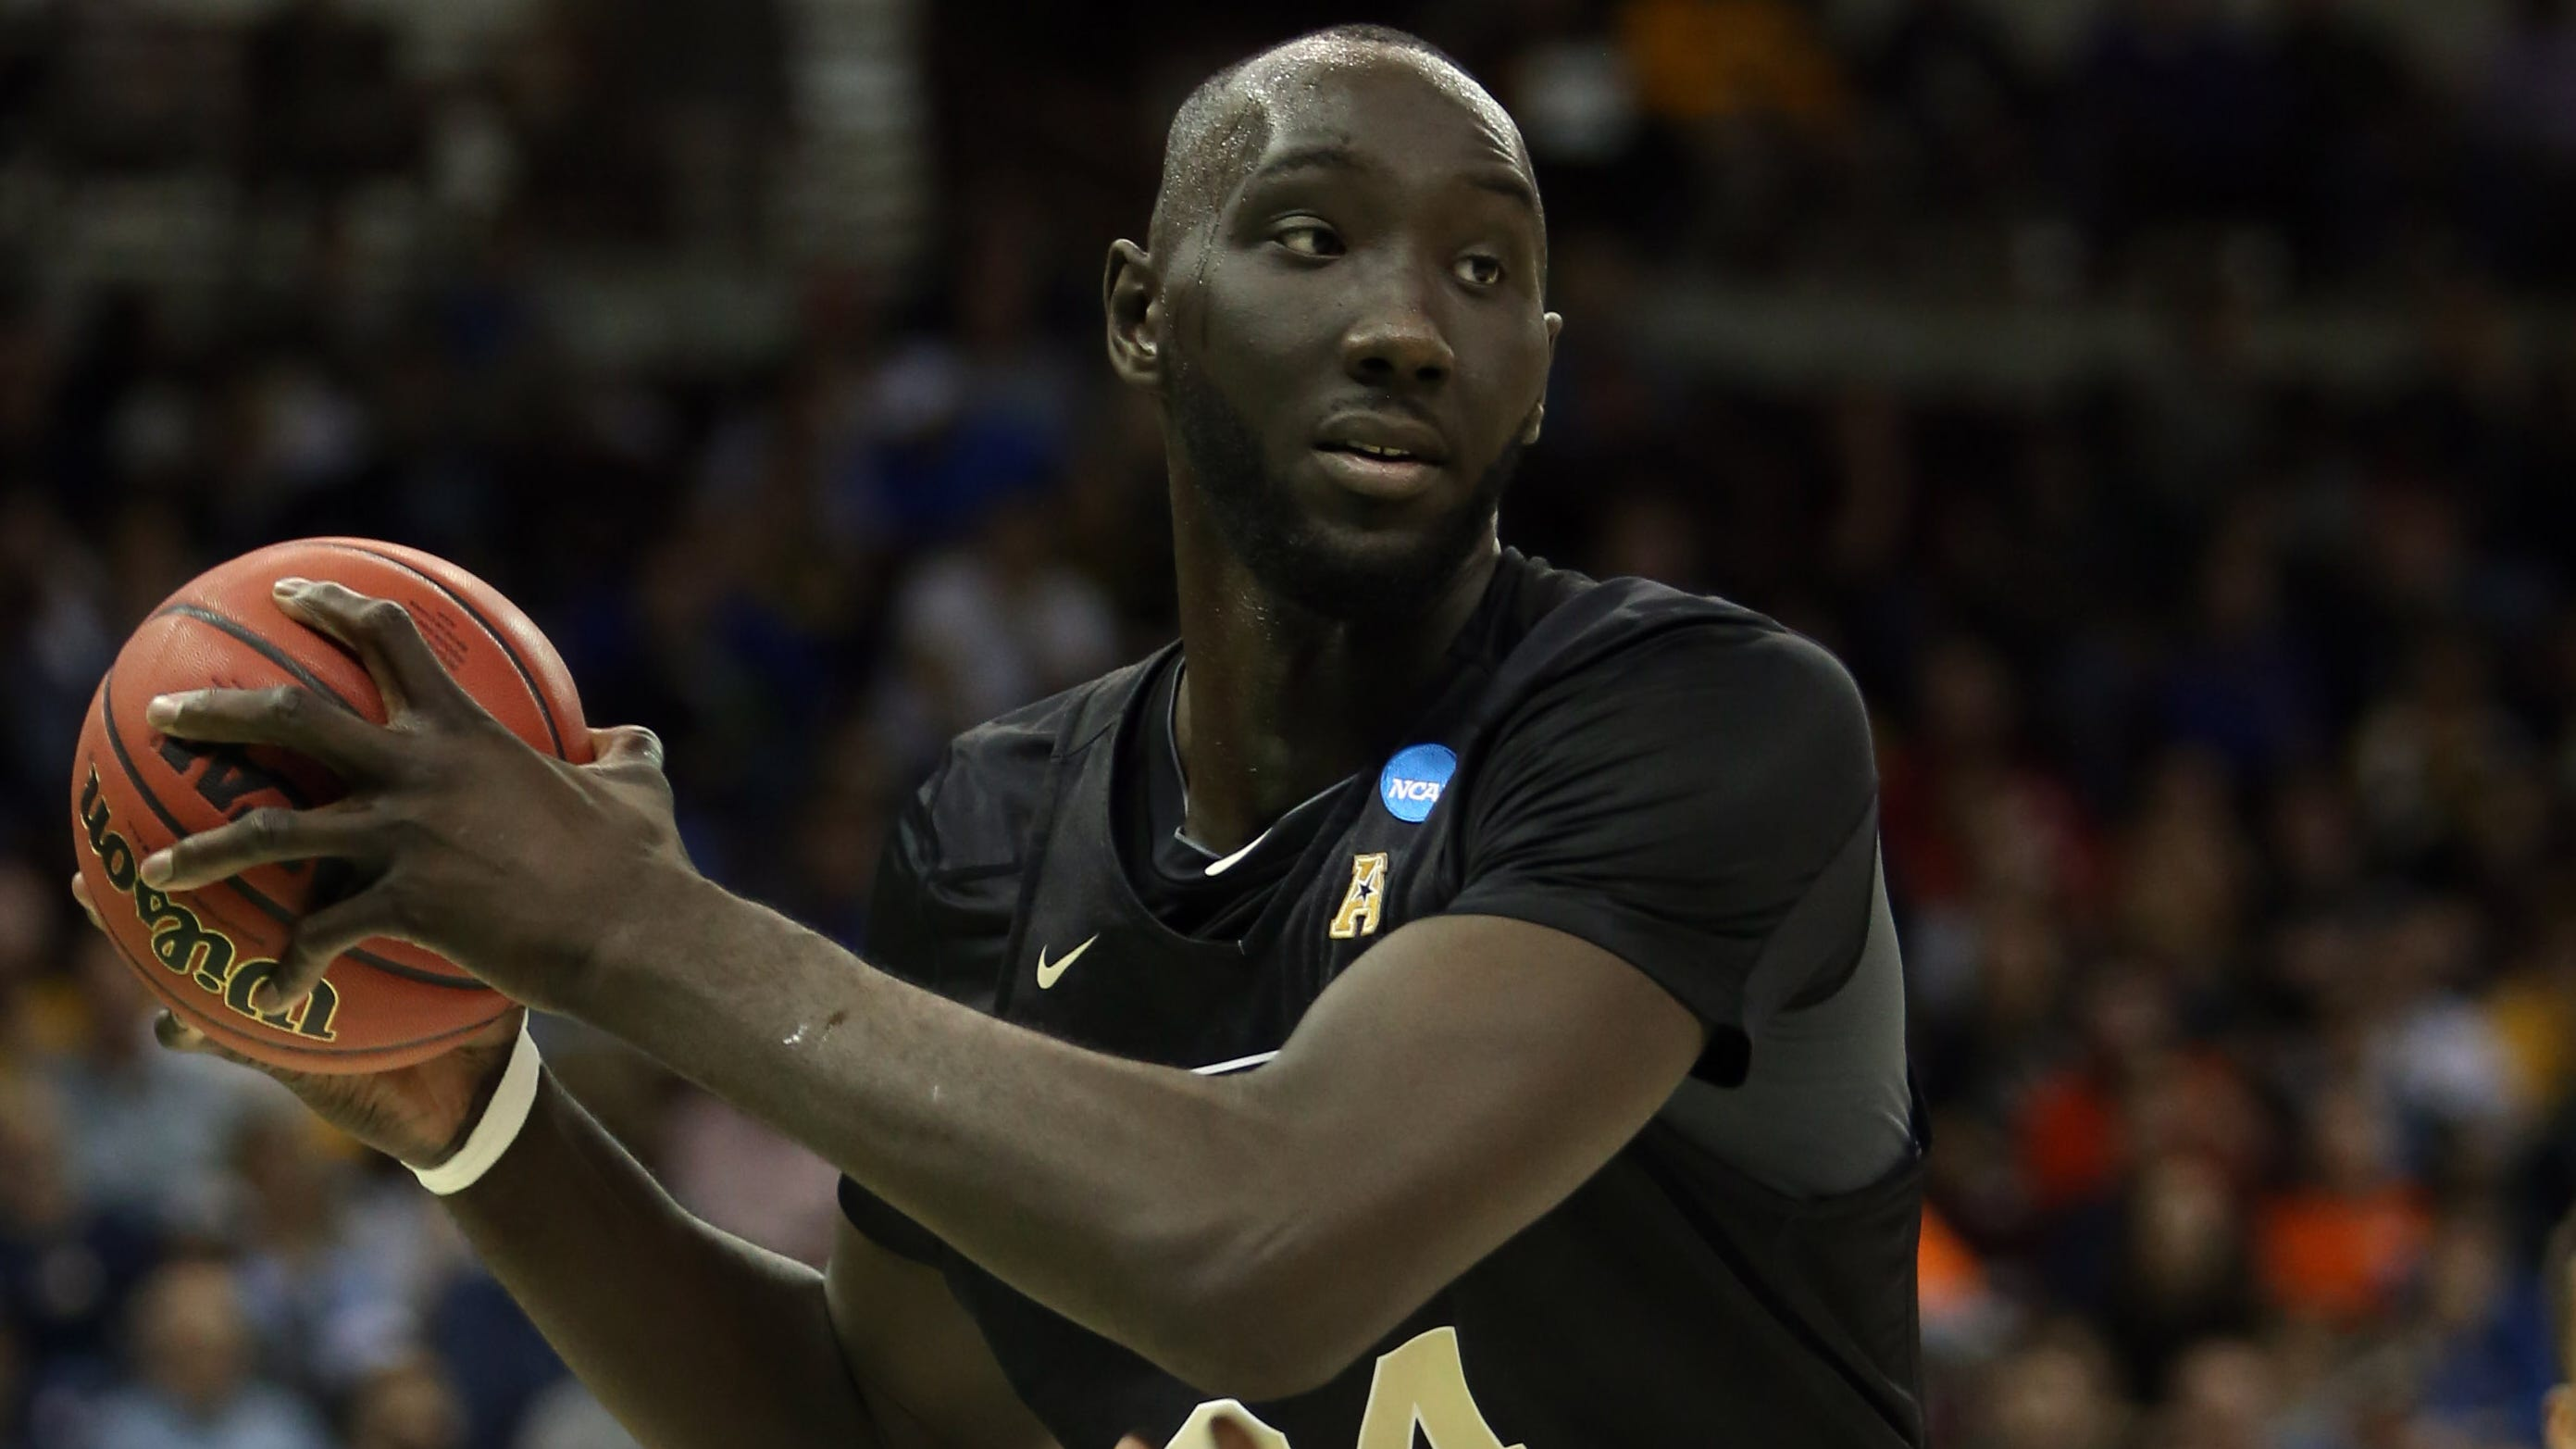 Central Florida center Tacko Fall and Duke's Zion Williamson could be headed for a monumental moment in the NCAA tournament Sunday.